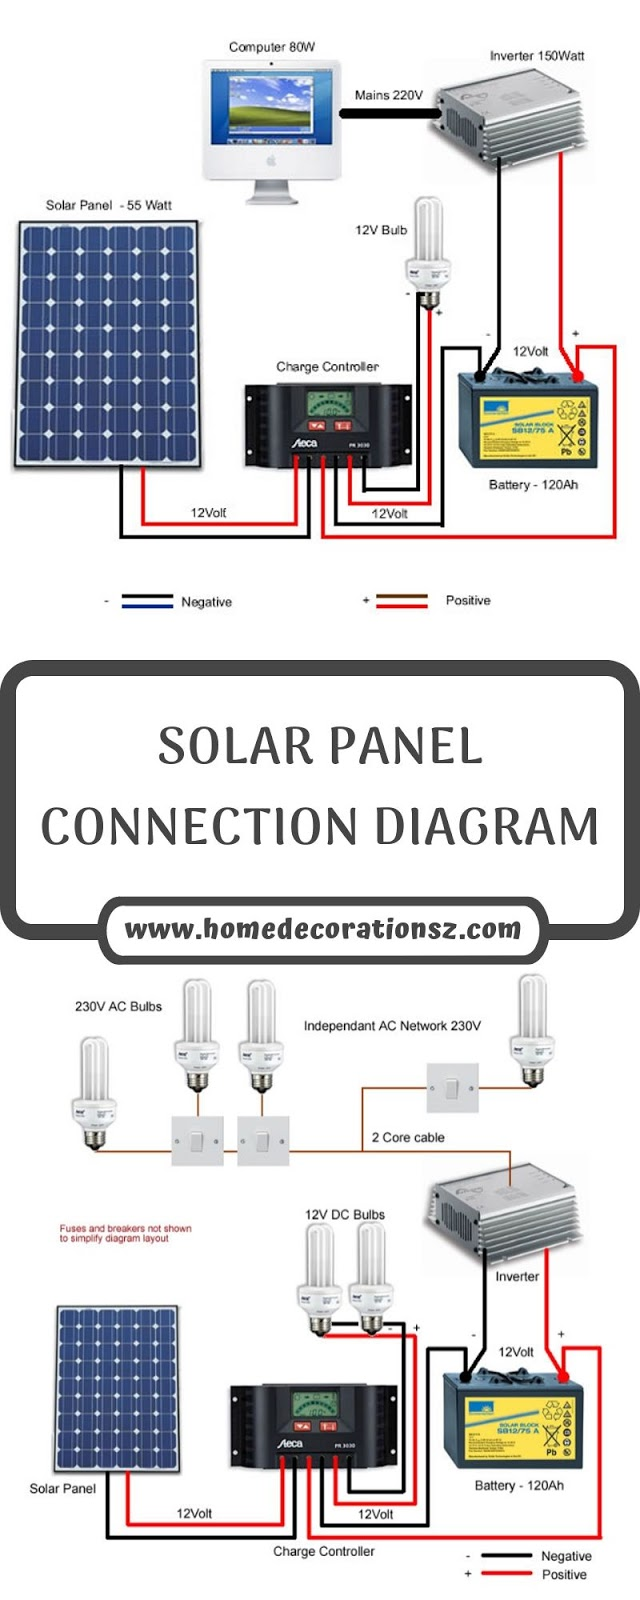 Solar Panel Connection Diagram Solar Panels Solar Panels For Home Solar